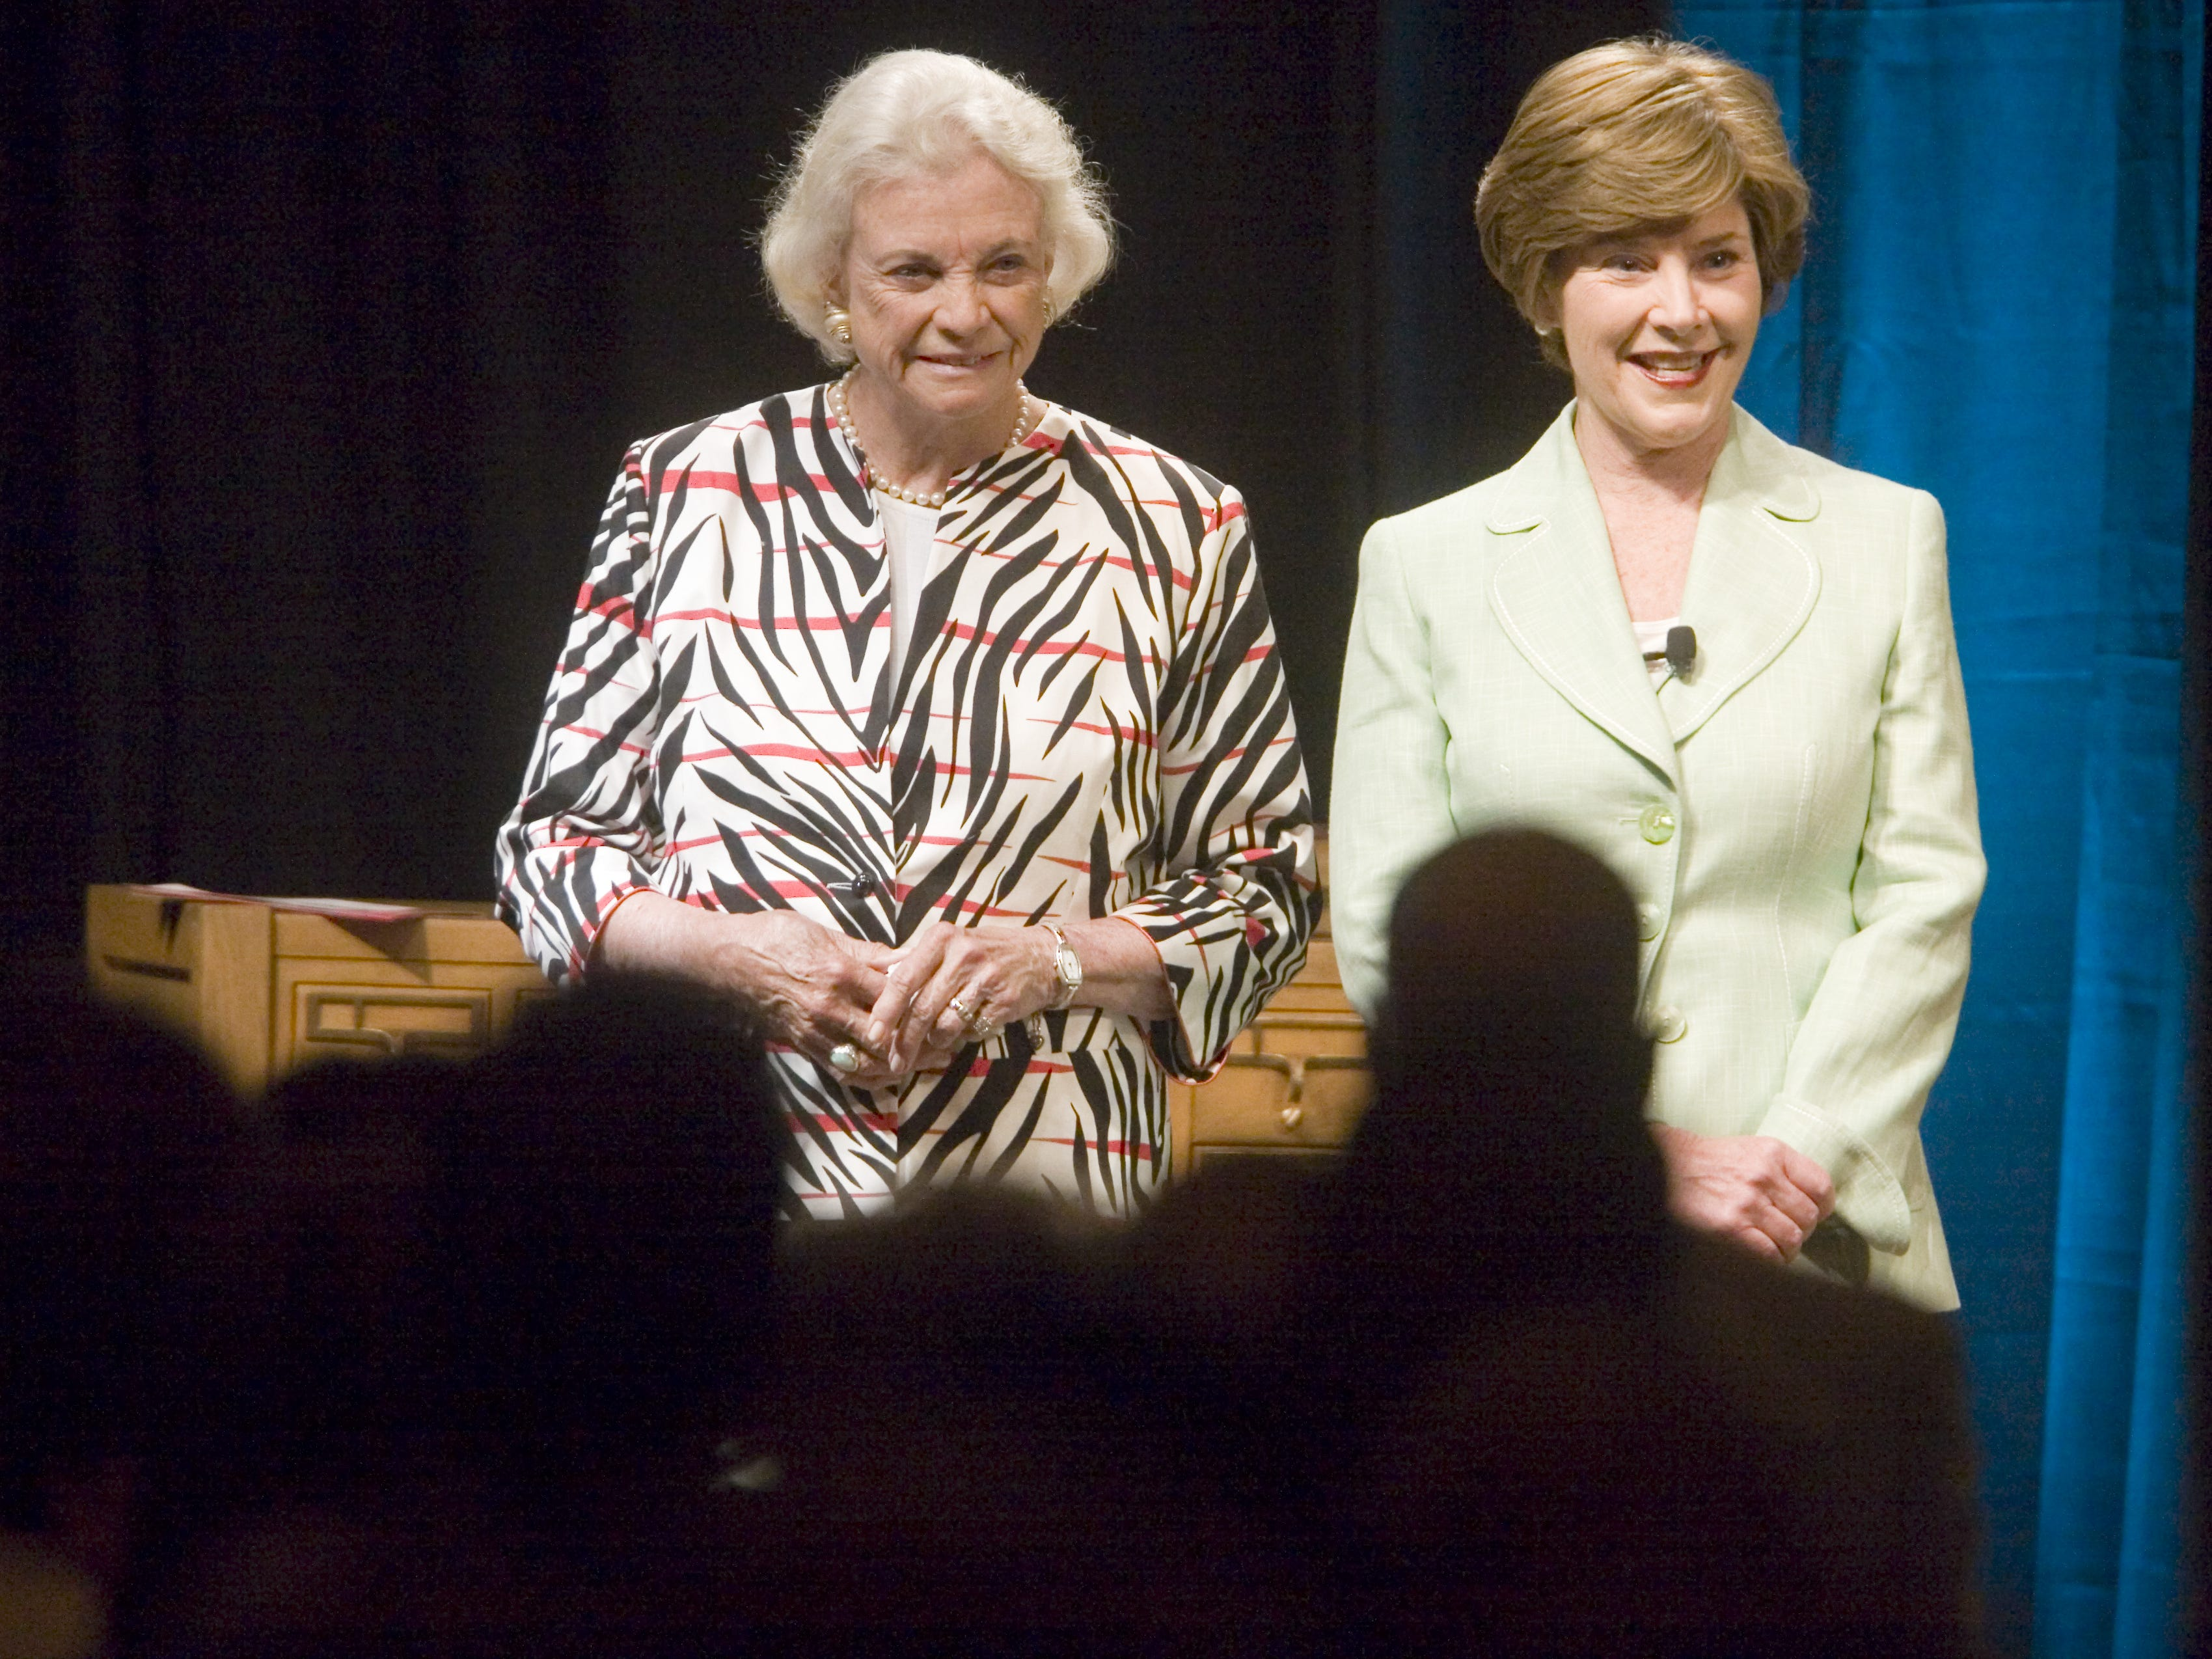 First Lady Laura Bush and retired Supreme Court Justice Sandra Day O'Connor at the awards luncheon on May 25, 2007.